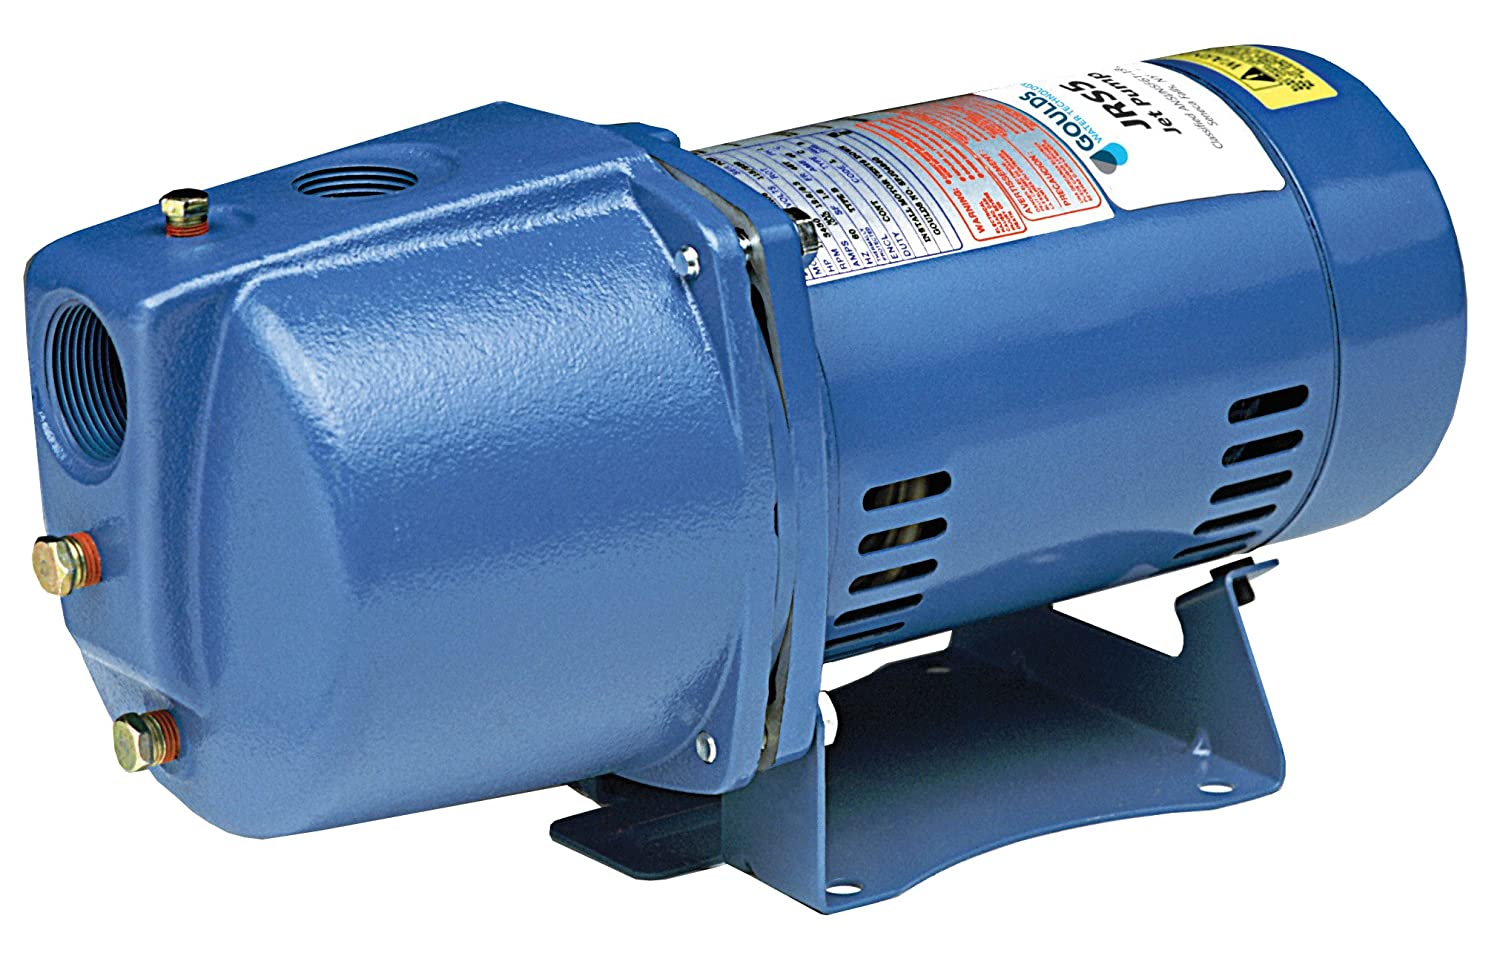 Goulds JRS7 3/4 HP Shallow Water Well Jet Pump: Amazon.co.uk: DIY ...